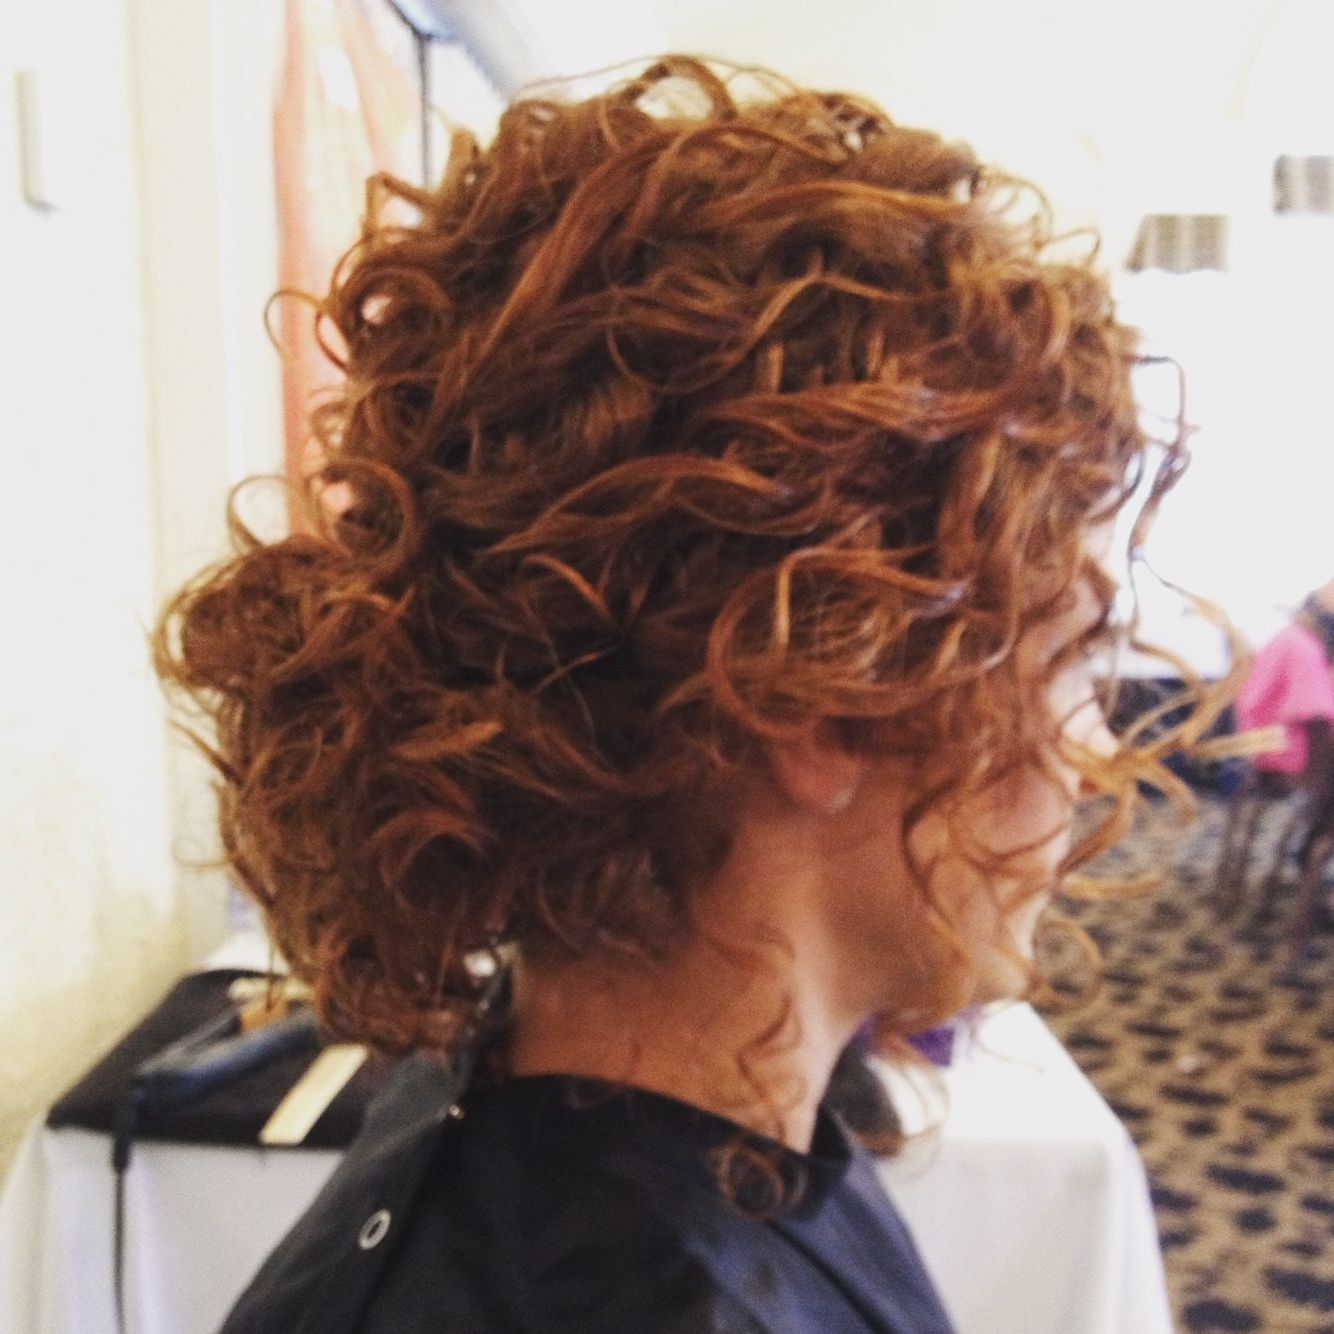 Naturally Curly Hair Low Bun Updo (View 13 of 15)